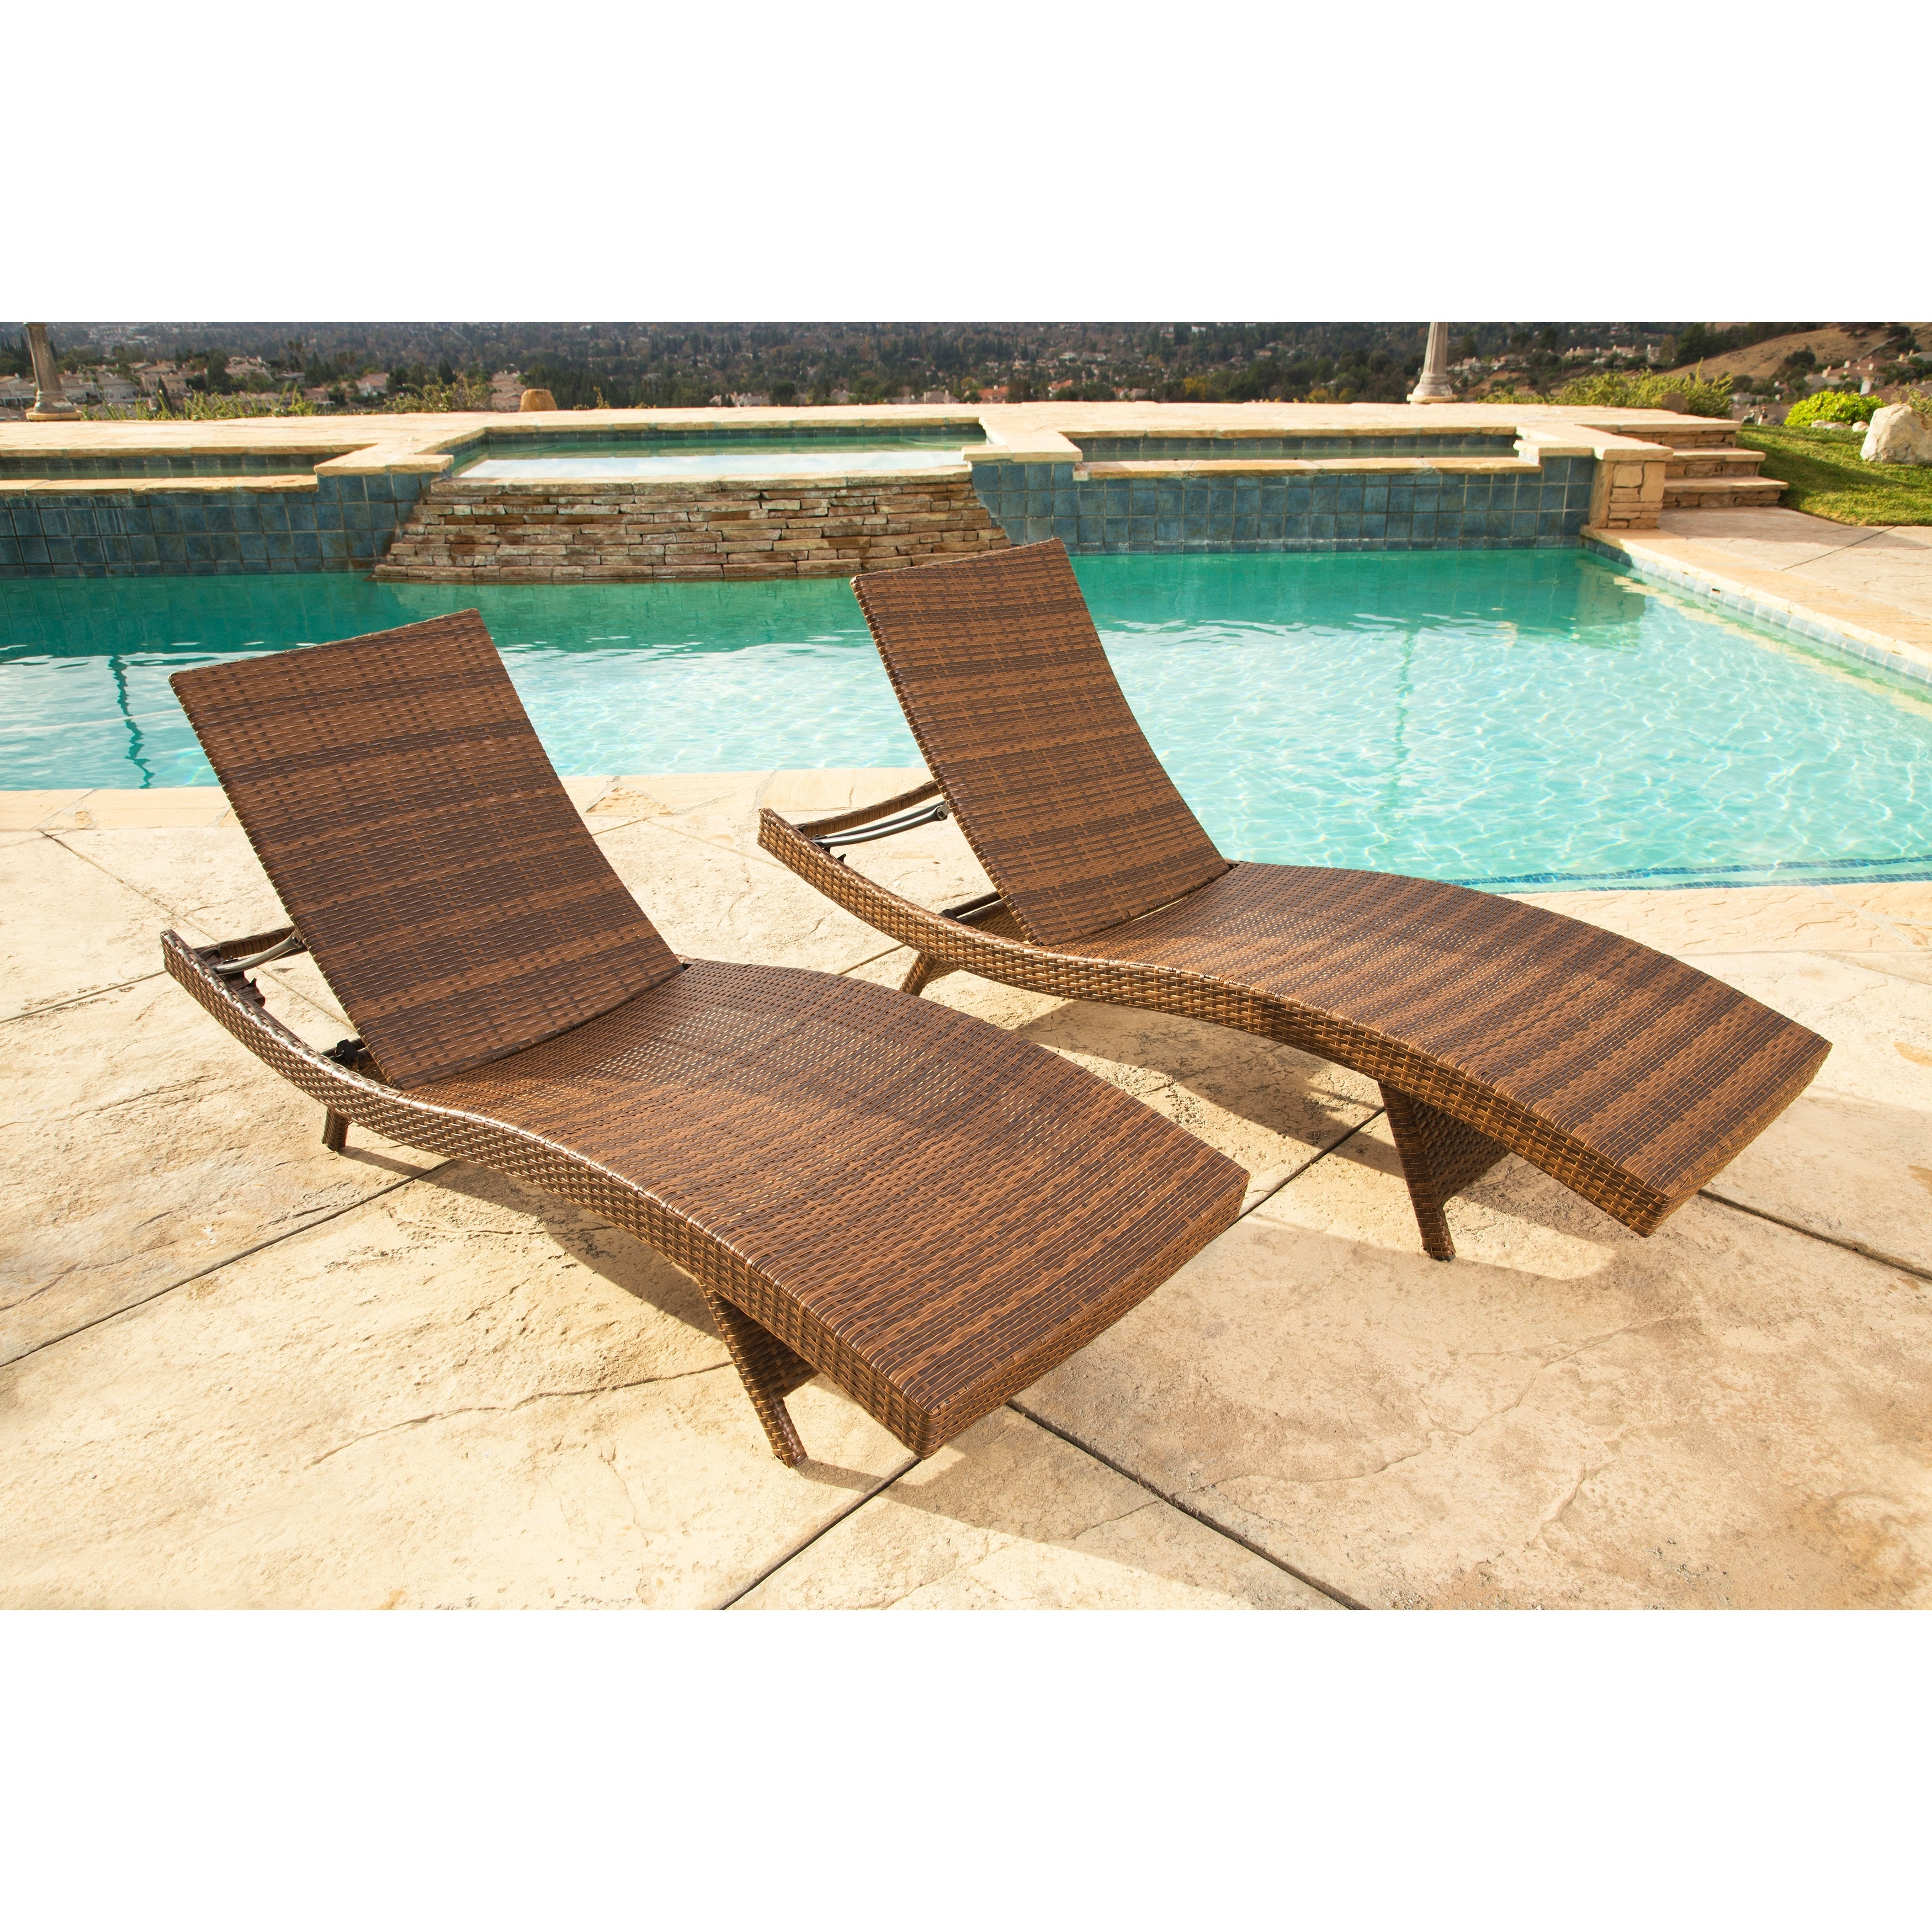 Overstock Outdoor Chaise Lounge Chairs Regarding 2018 Abbyson Palermo Outdoor Brown Wicker Chaise Lounge Set – Free (View 14 of 15)